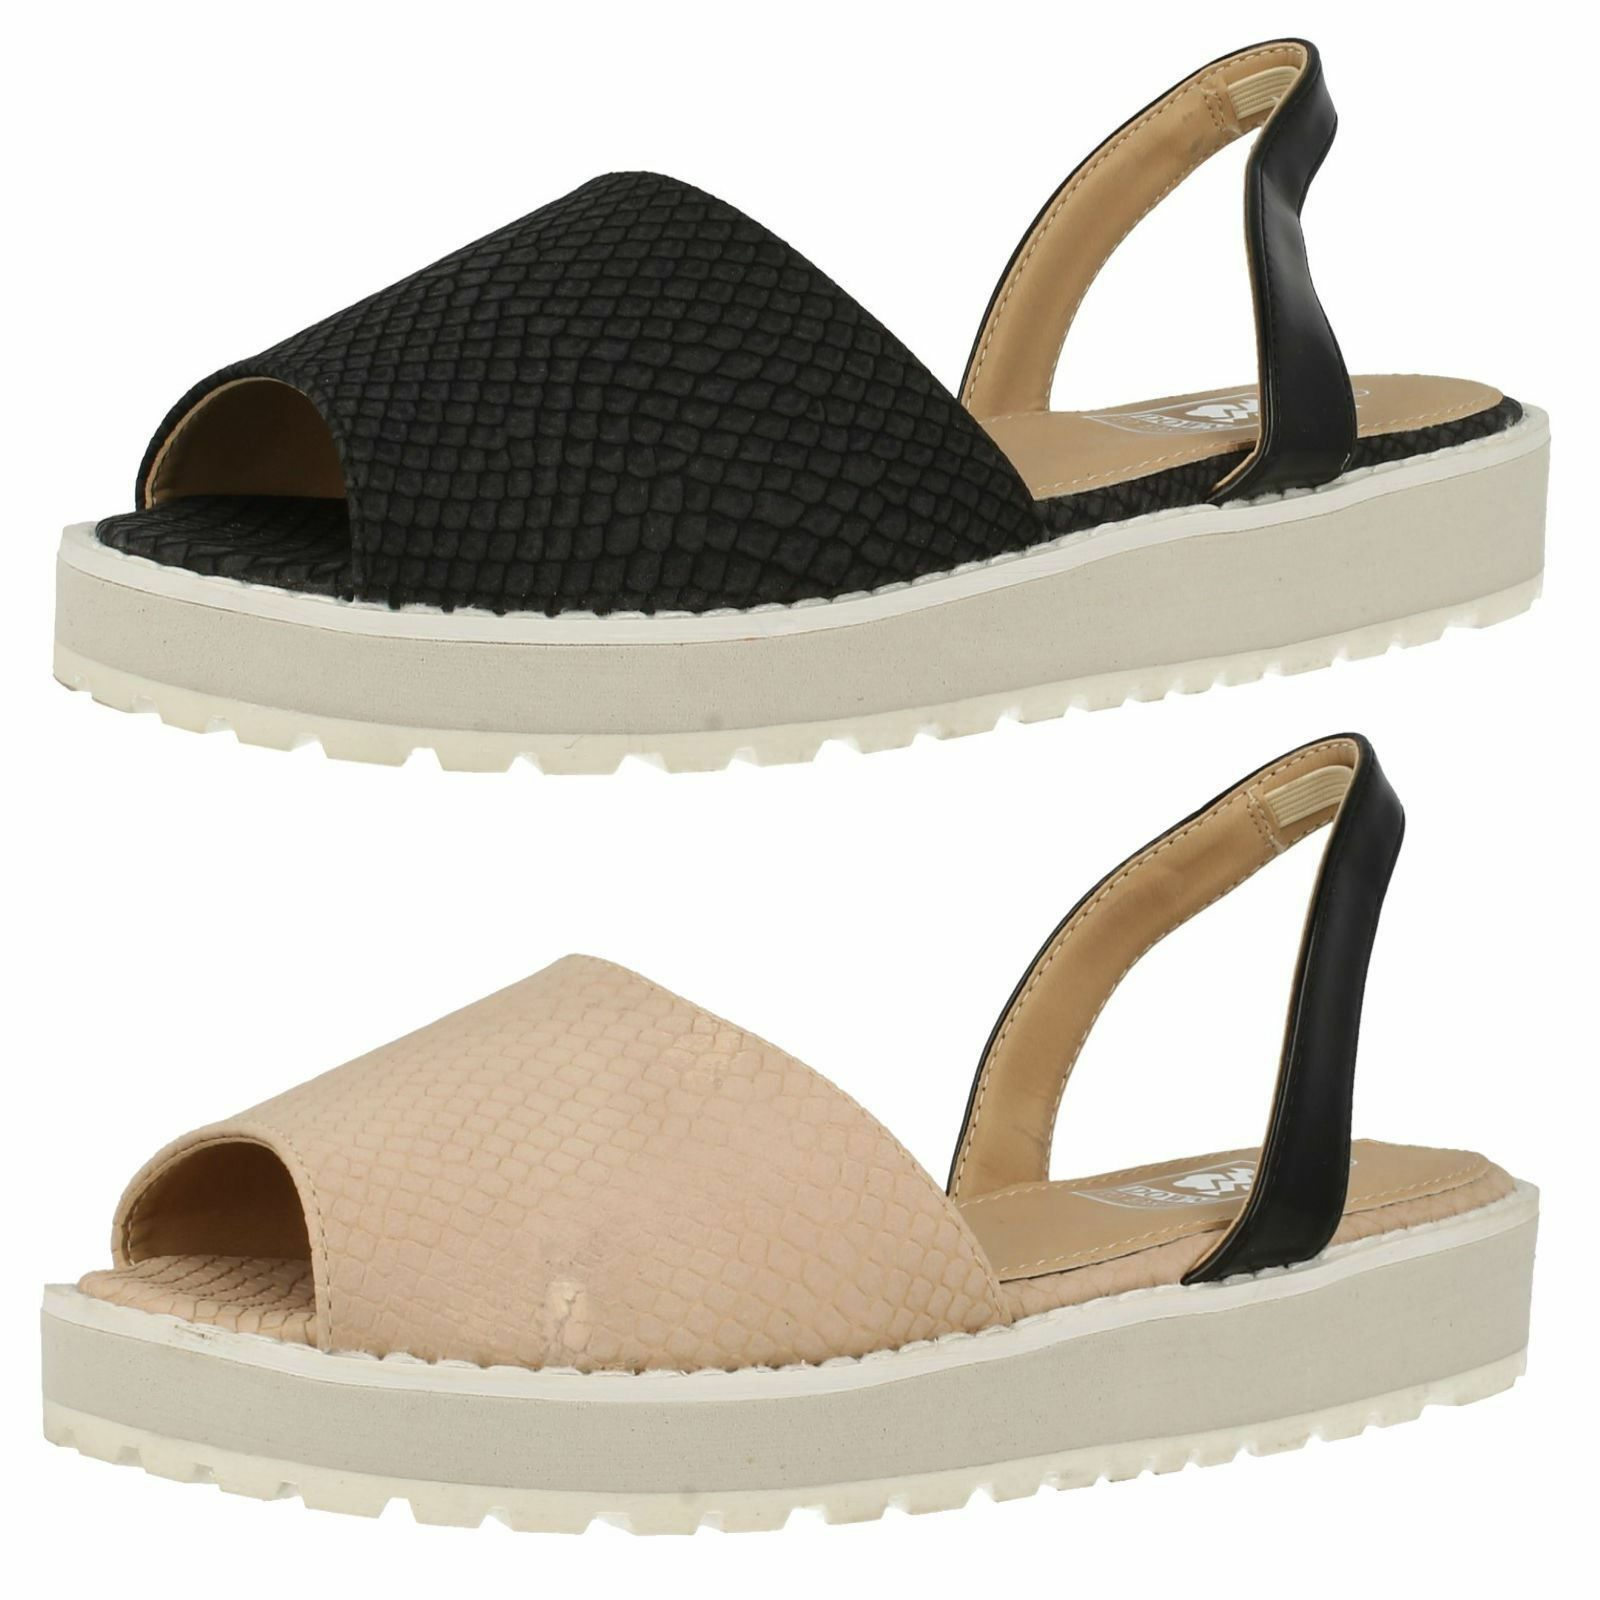 SALE LADIES DOWN TO EARTH SLING BACK FLAT F10324 PEEP TOE CASUAL SANDALS F10324 FLAT 76c215